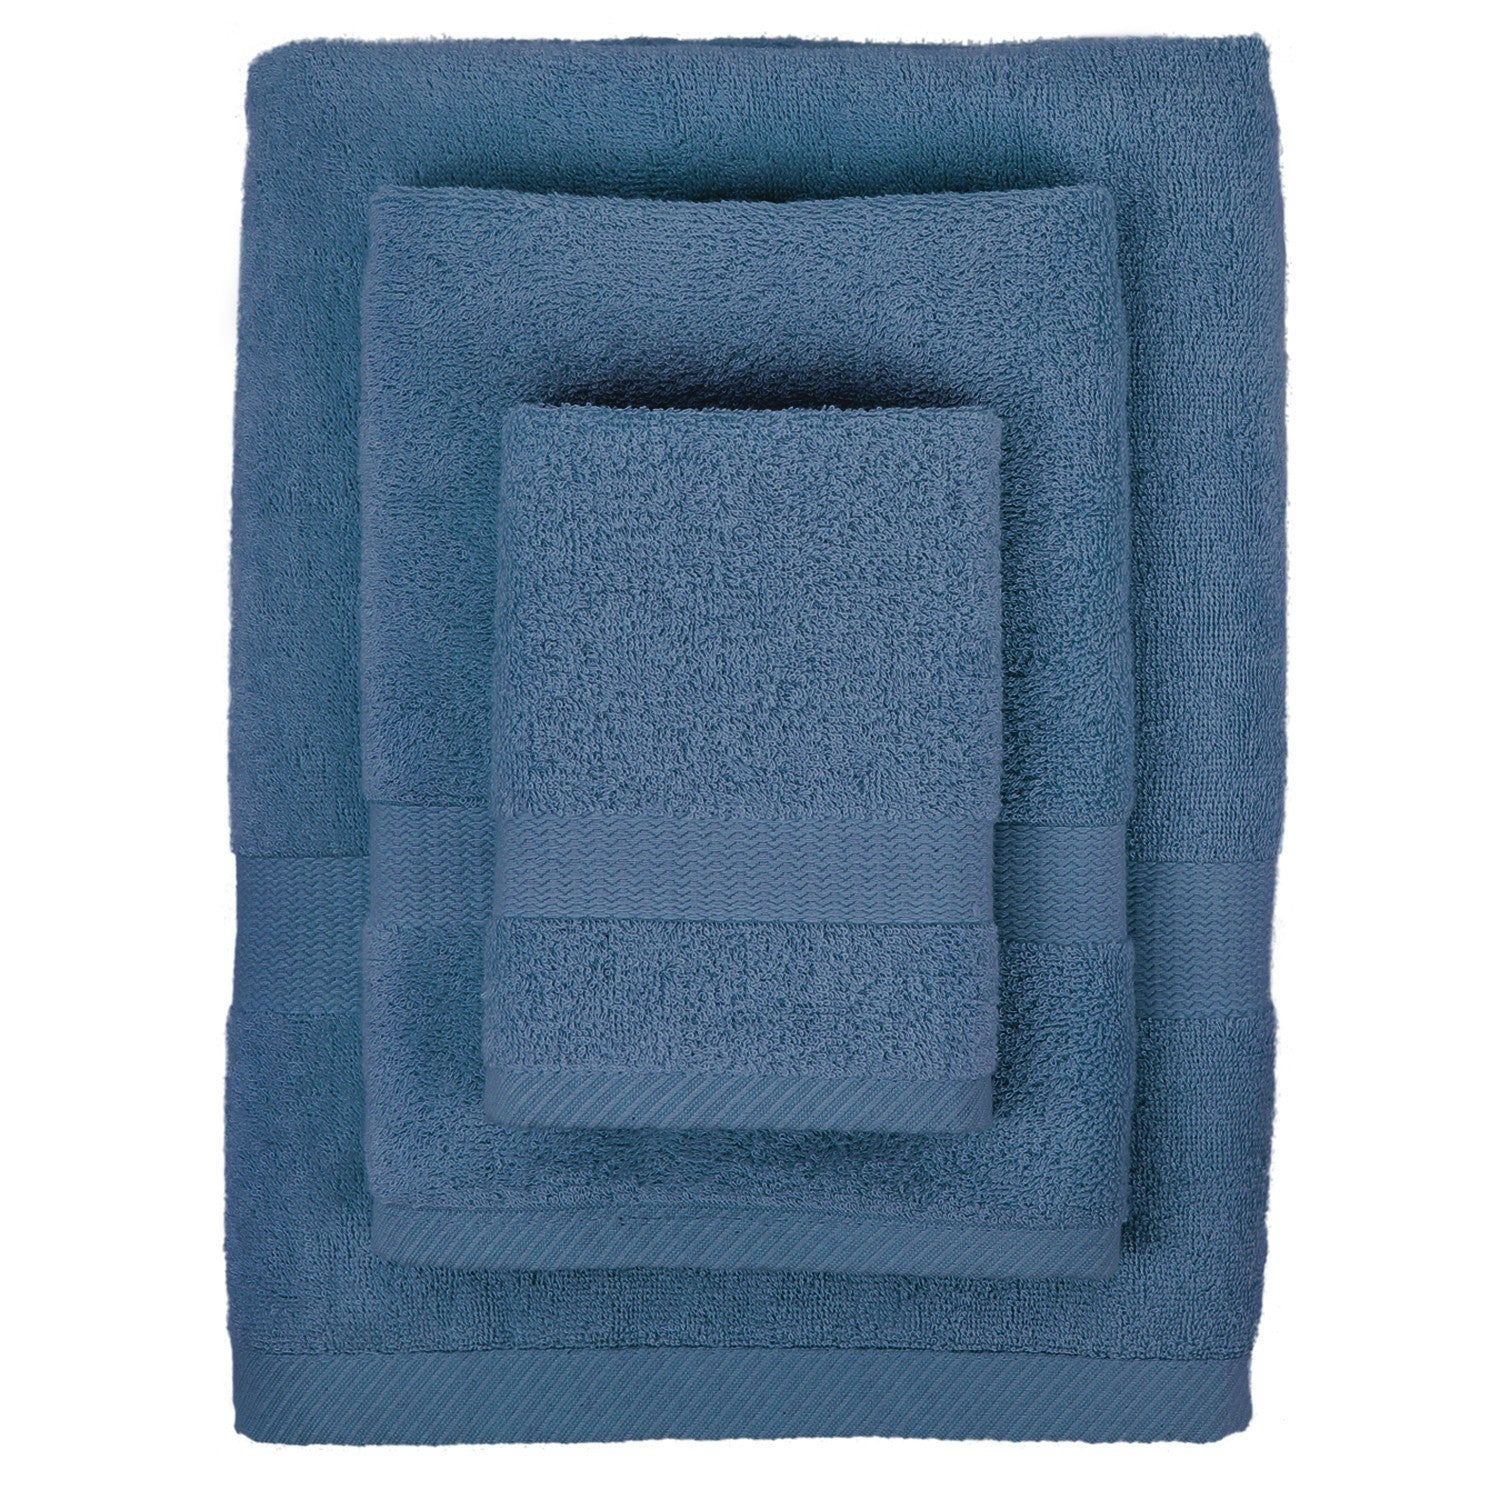 Bamboo Viscose Towel Set in Midnight Blue